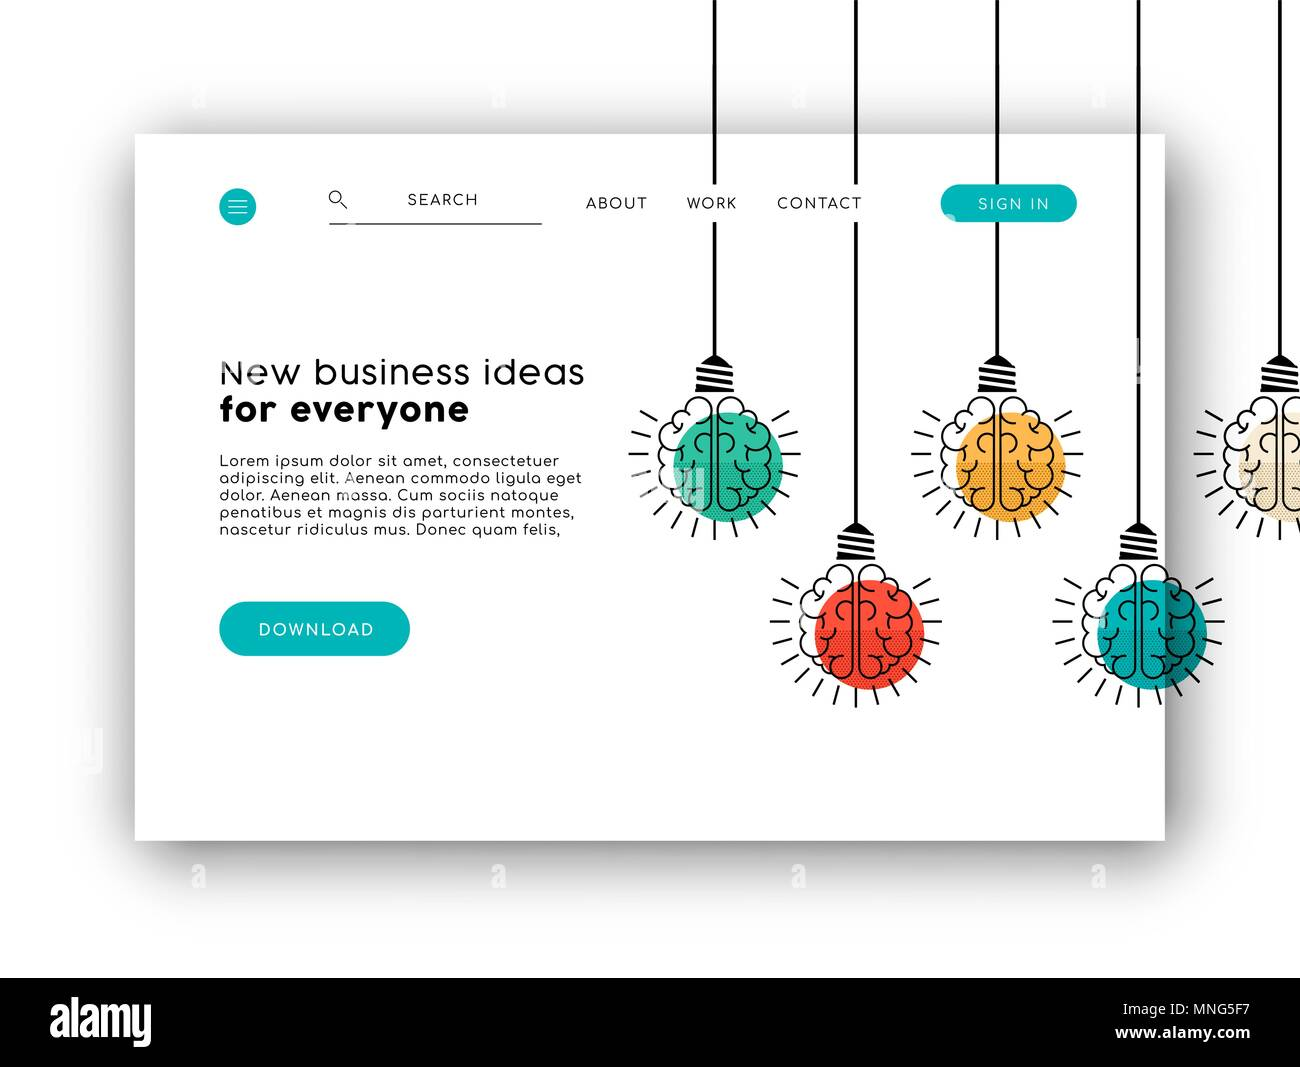 Web landing page for online app or business ideas  Internet